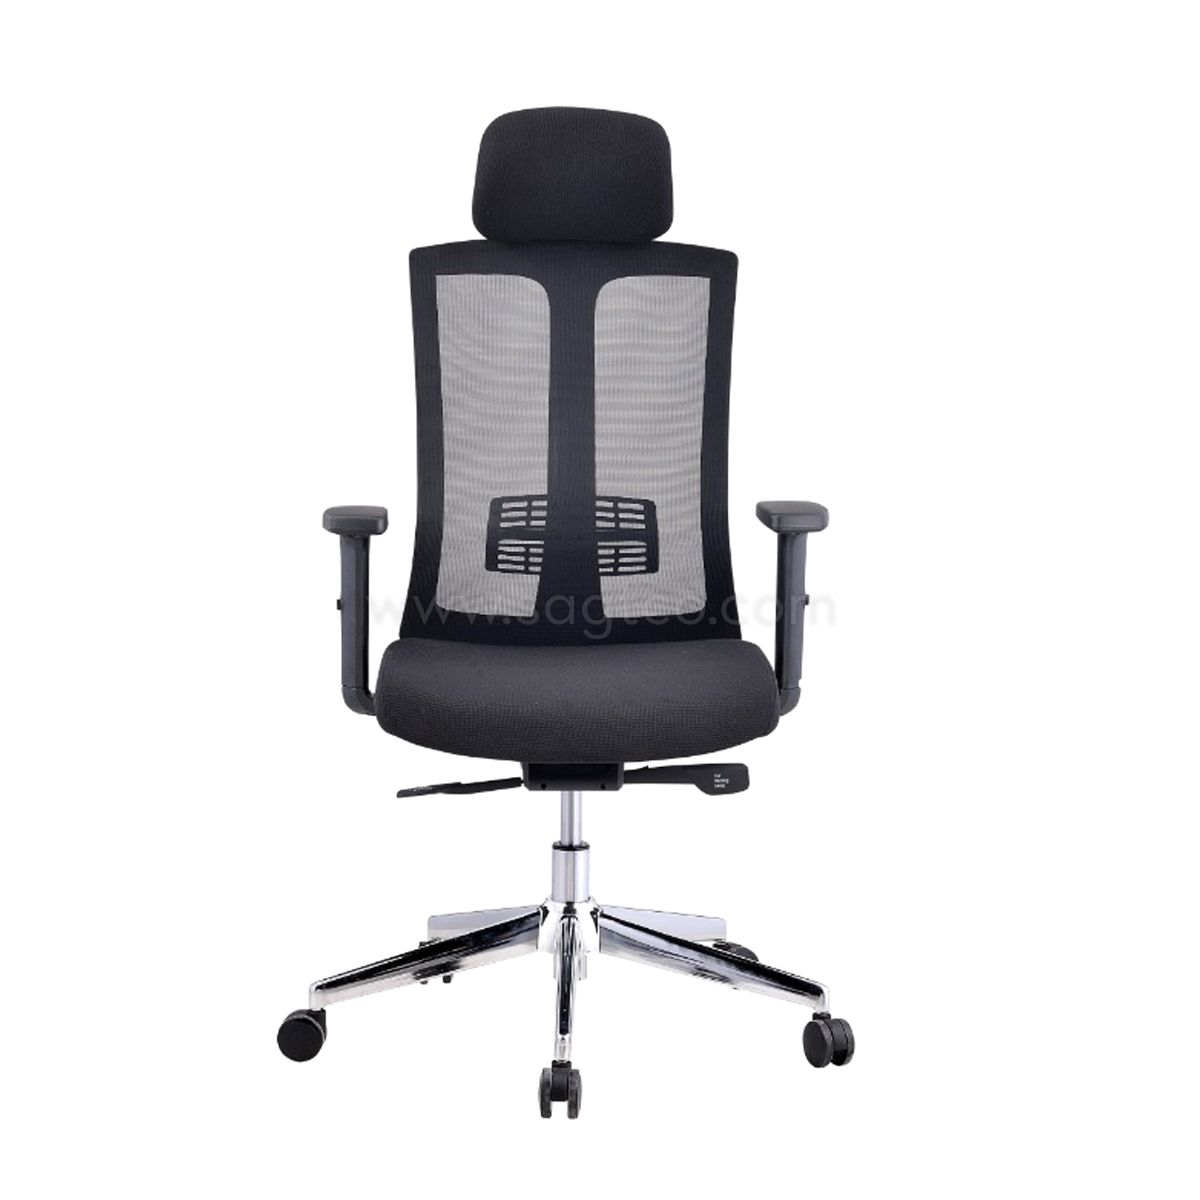 Office Chairs ReadyInStock -Office Furniture Dubai,Abu